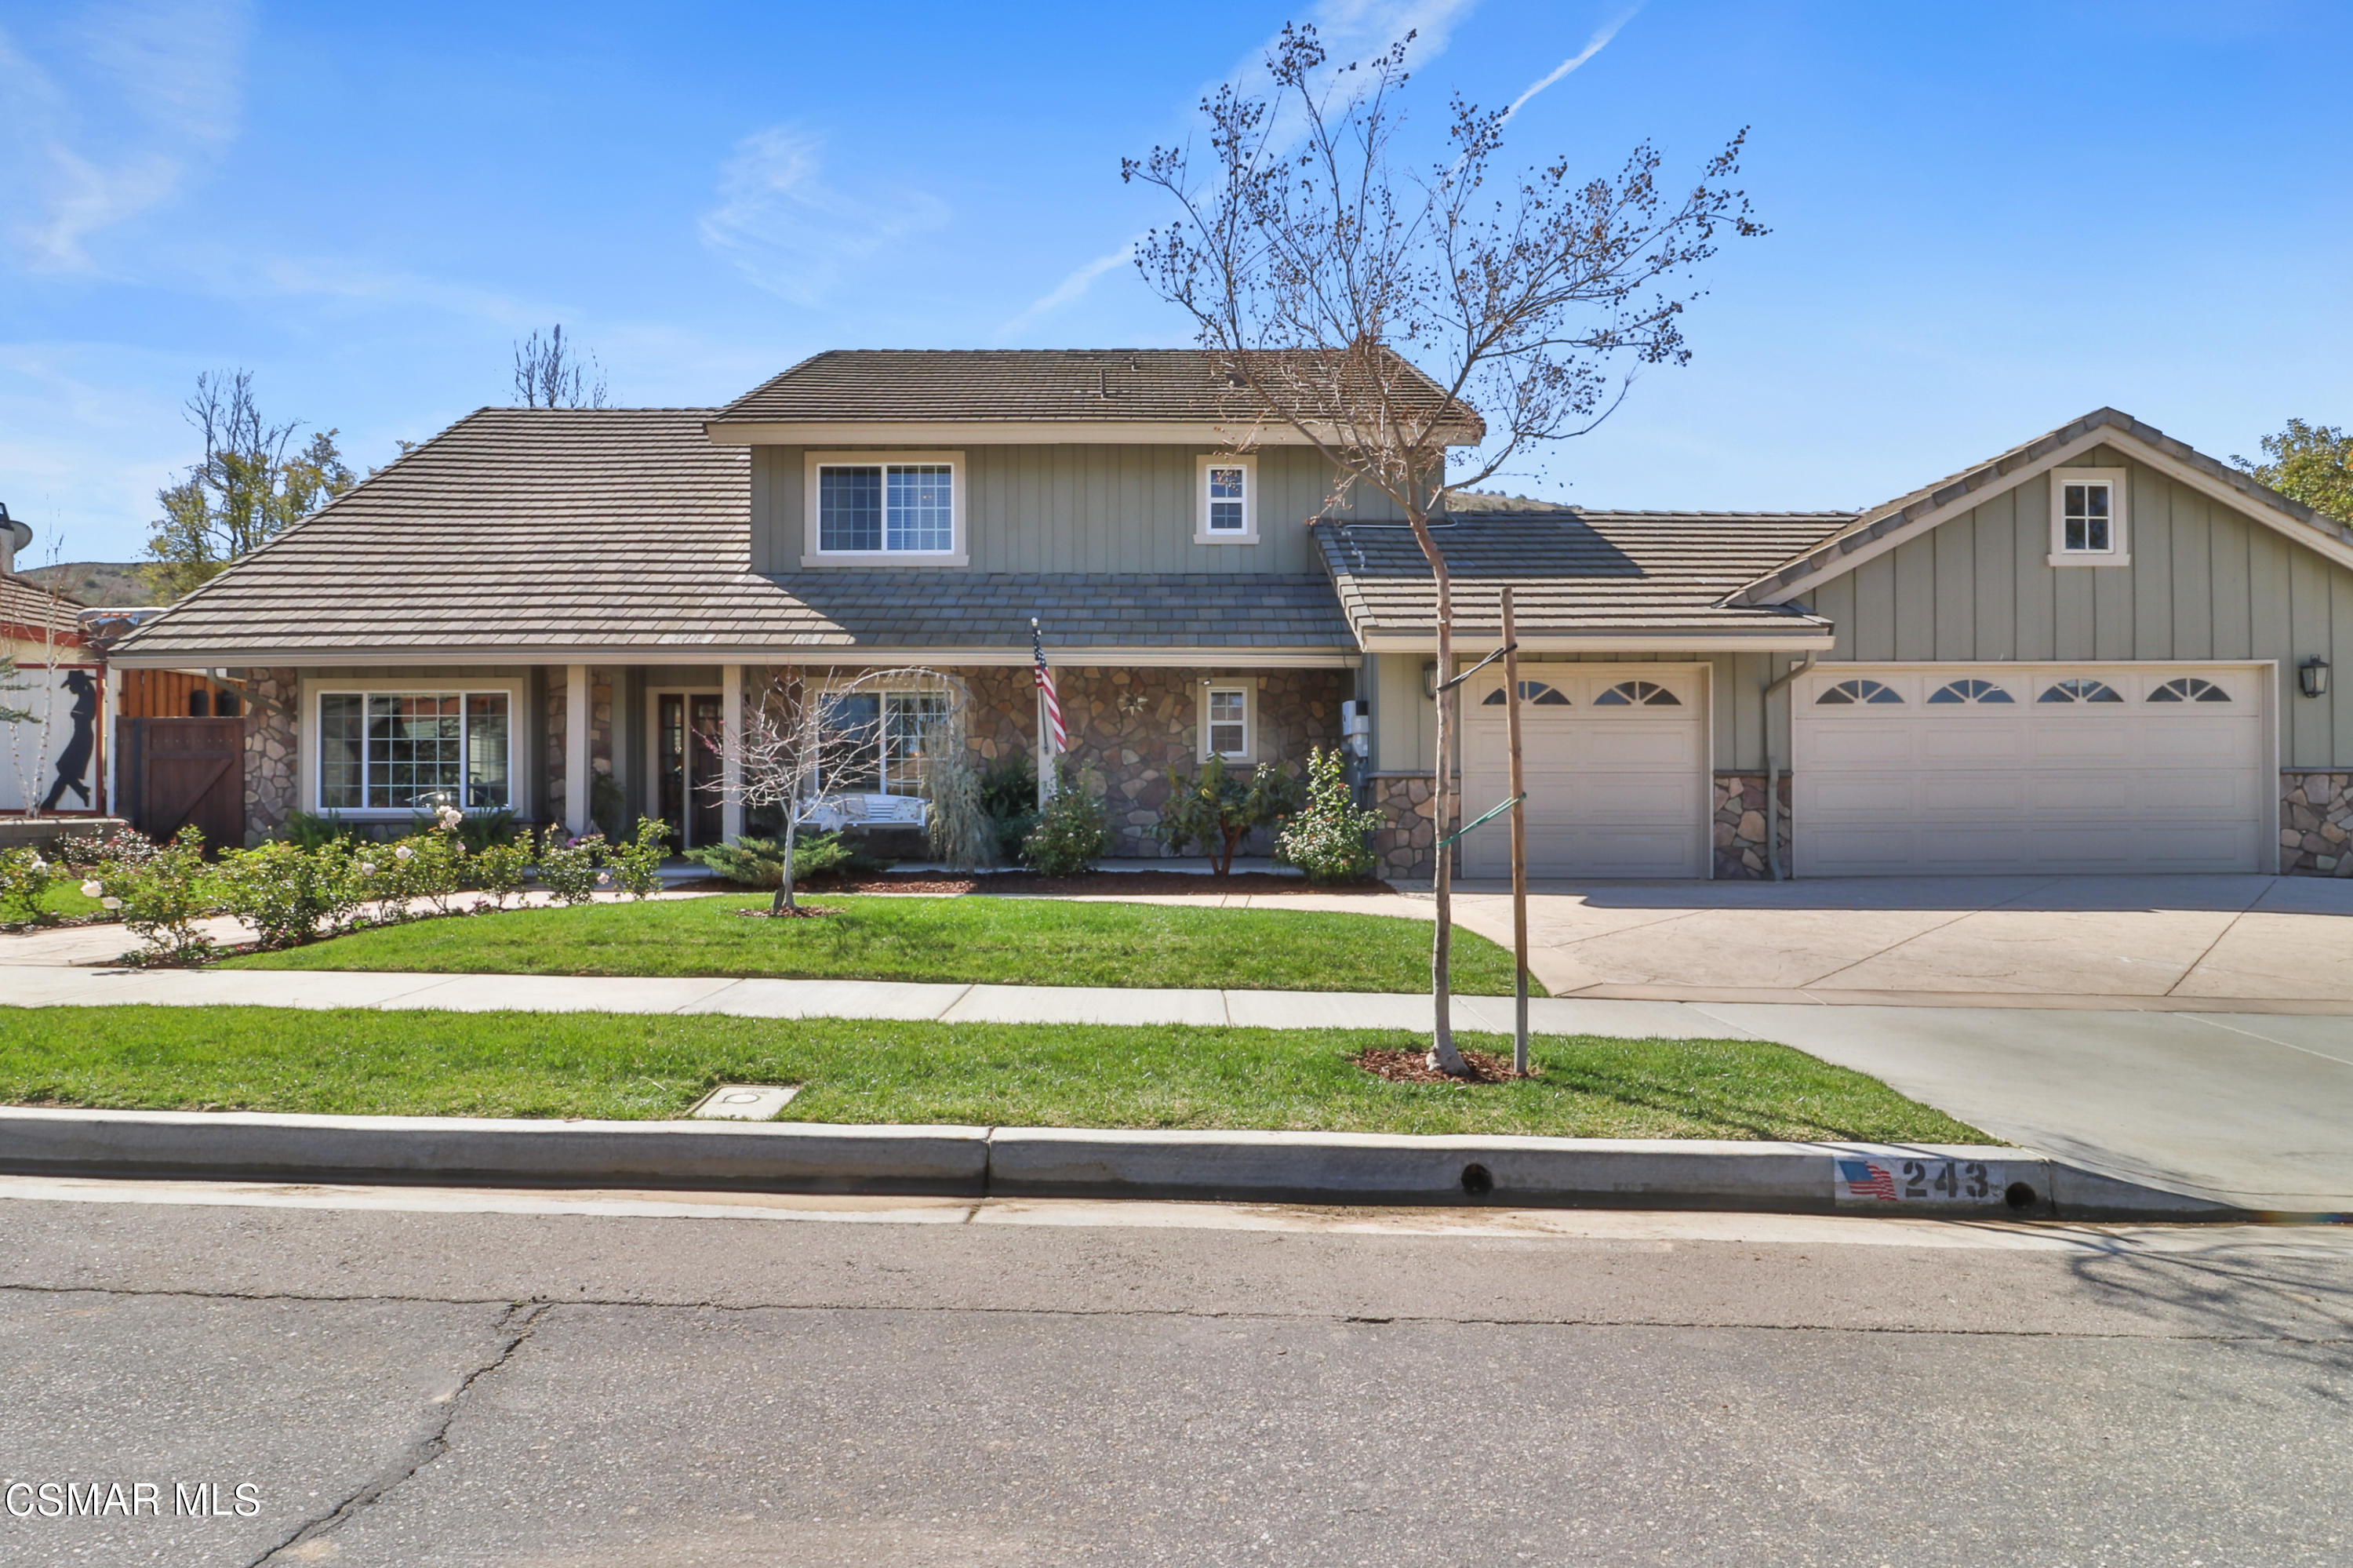 Photo of 243 Longbranch Road, Simi Valley, CA 93065